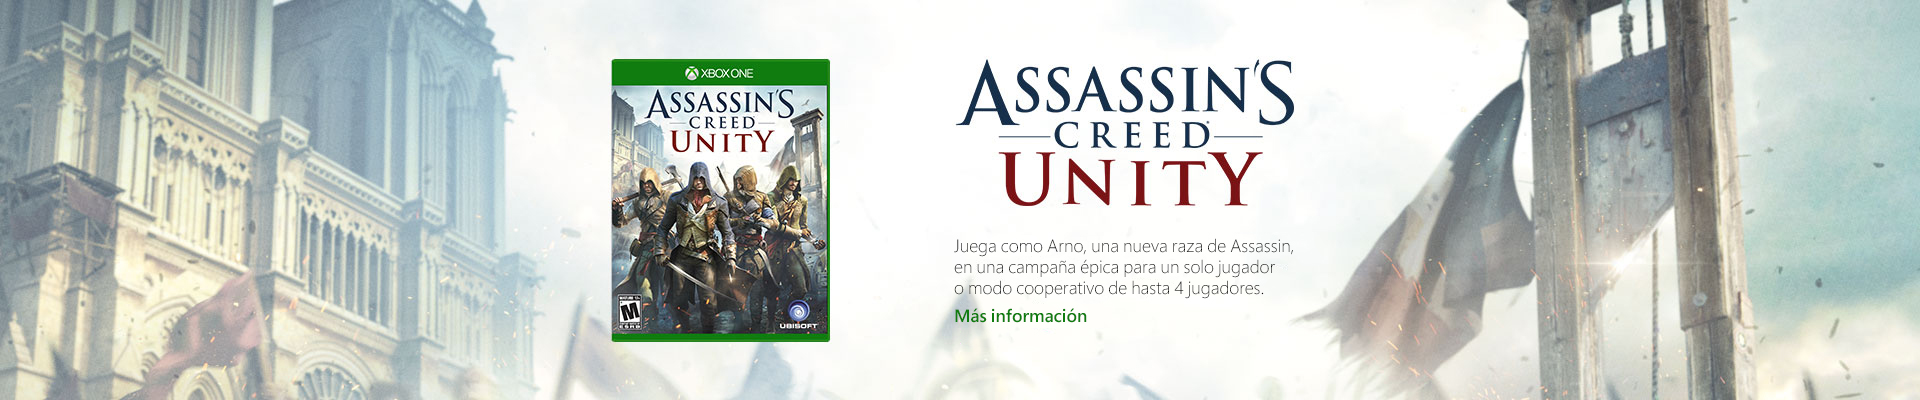 Xbox One Assassin's Creed Unity banner